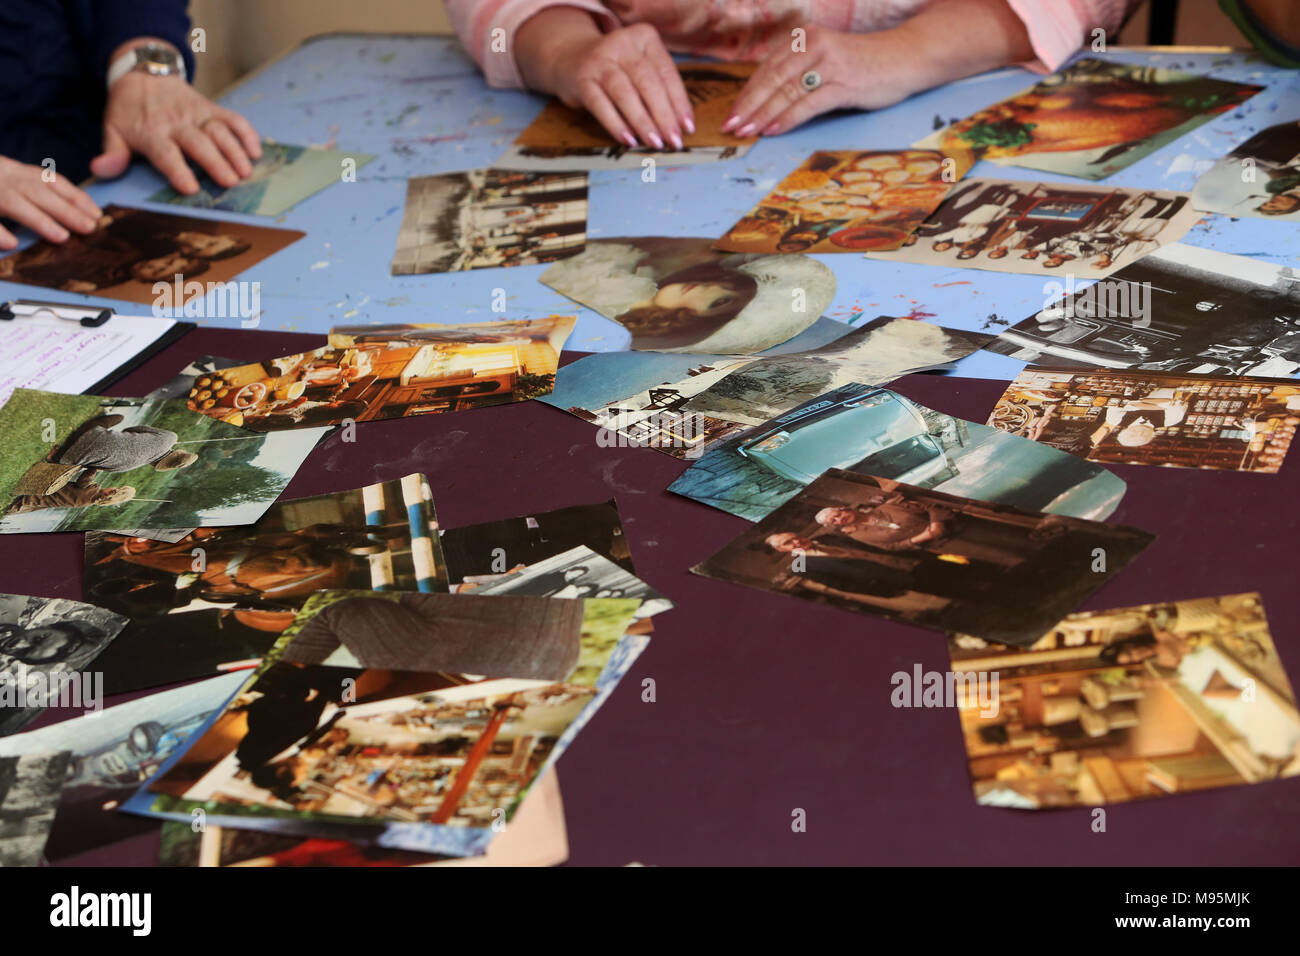 A craft club doing some crafting with old photographs in Bognor Regis, West Sussex, UK. Stock Photo